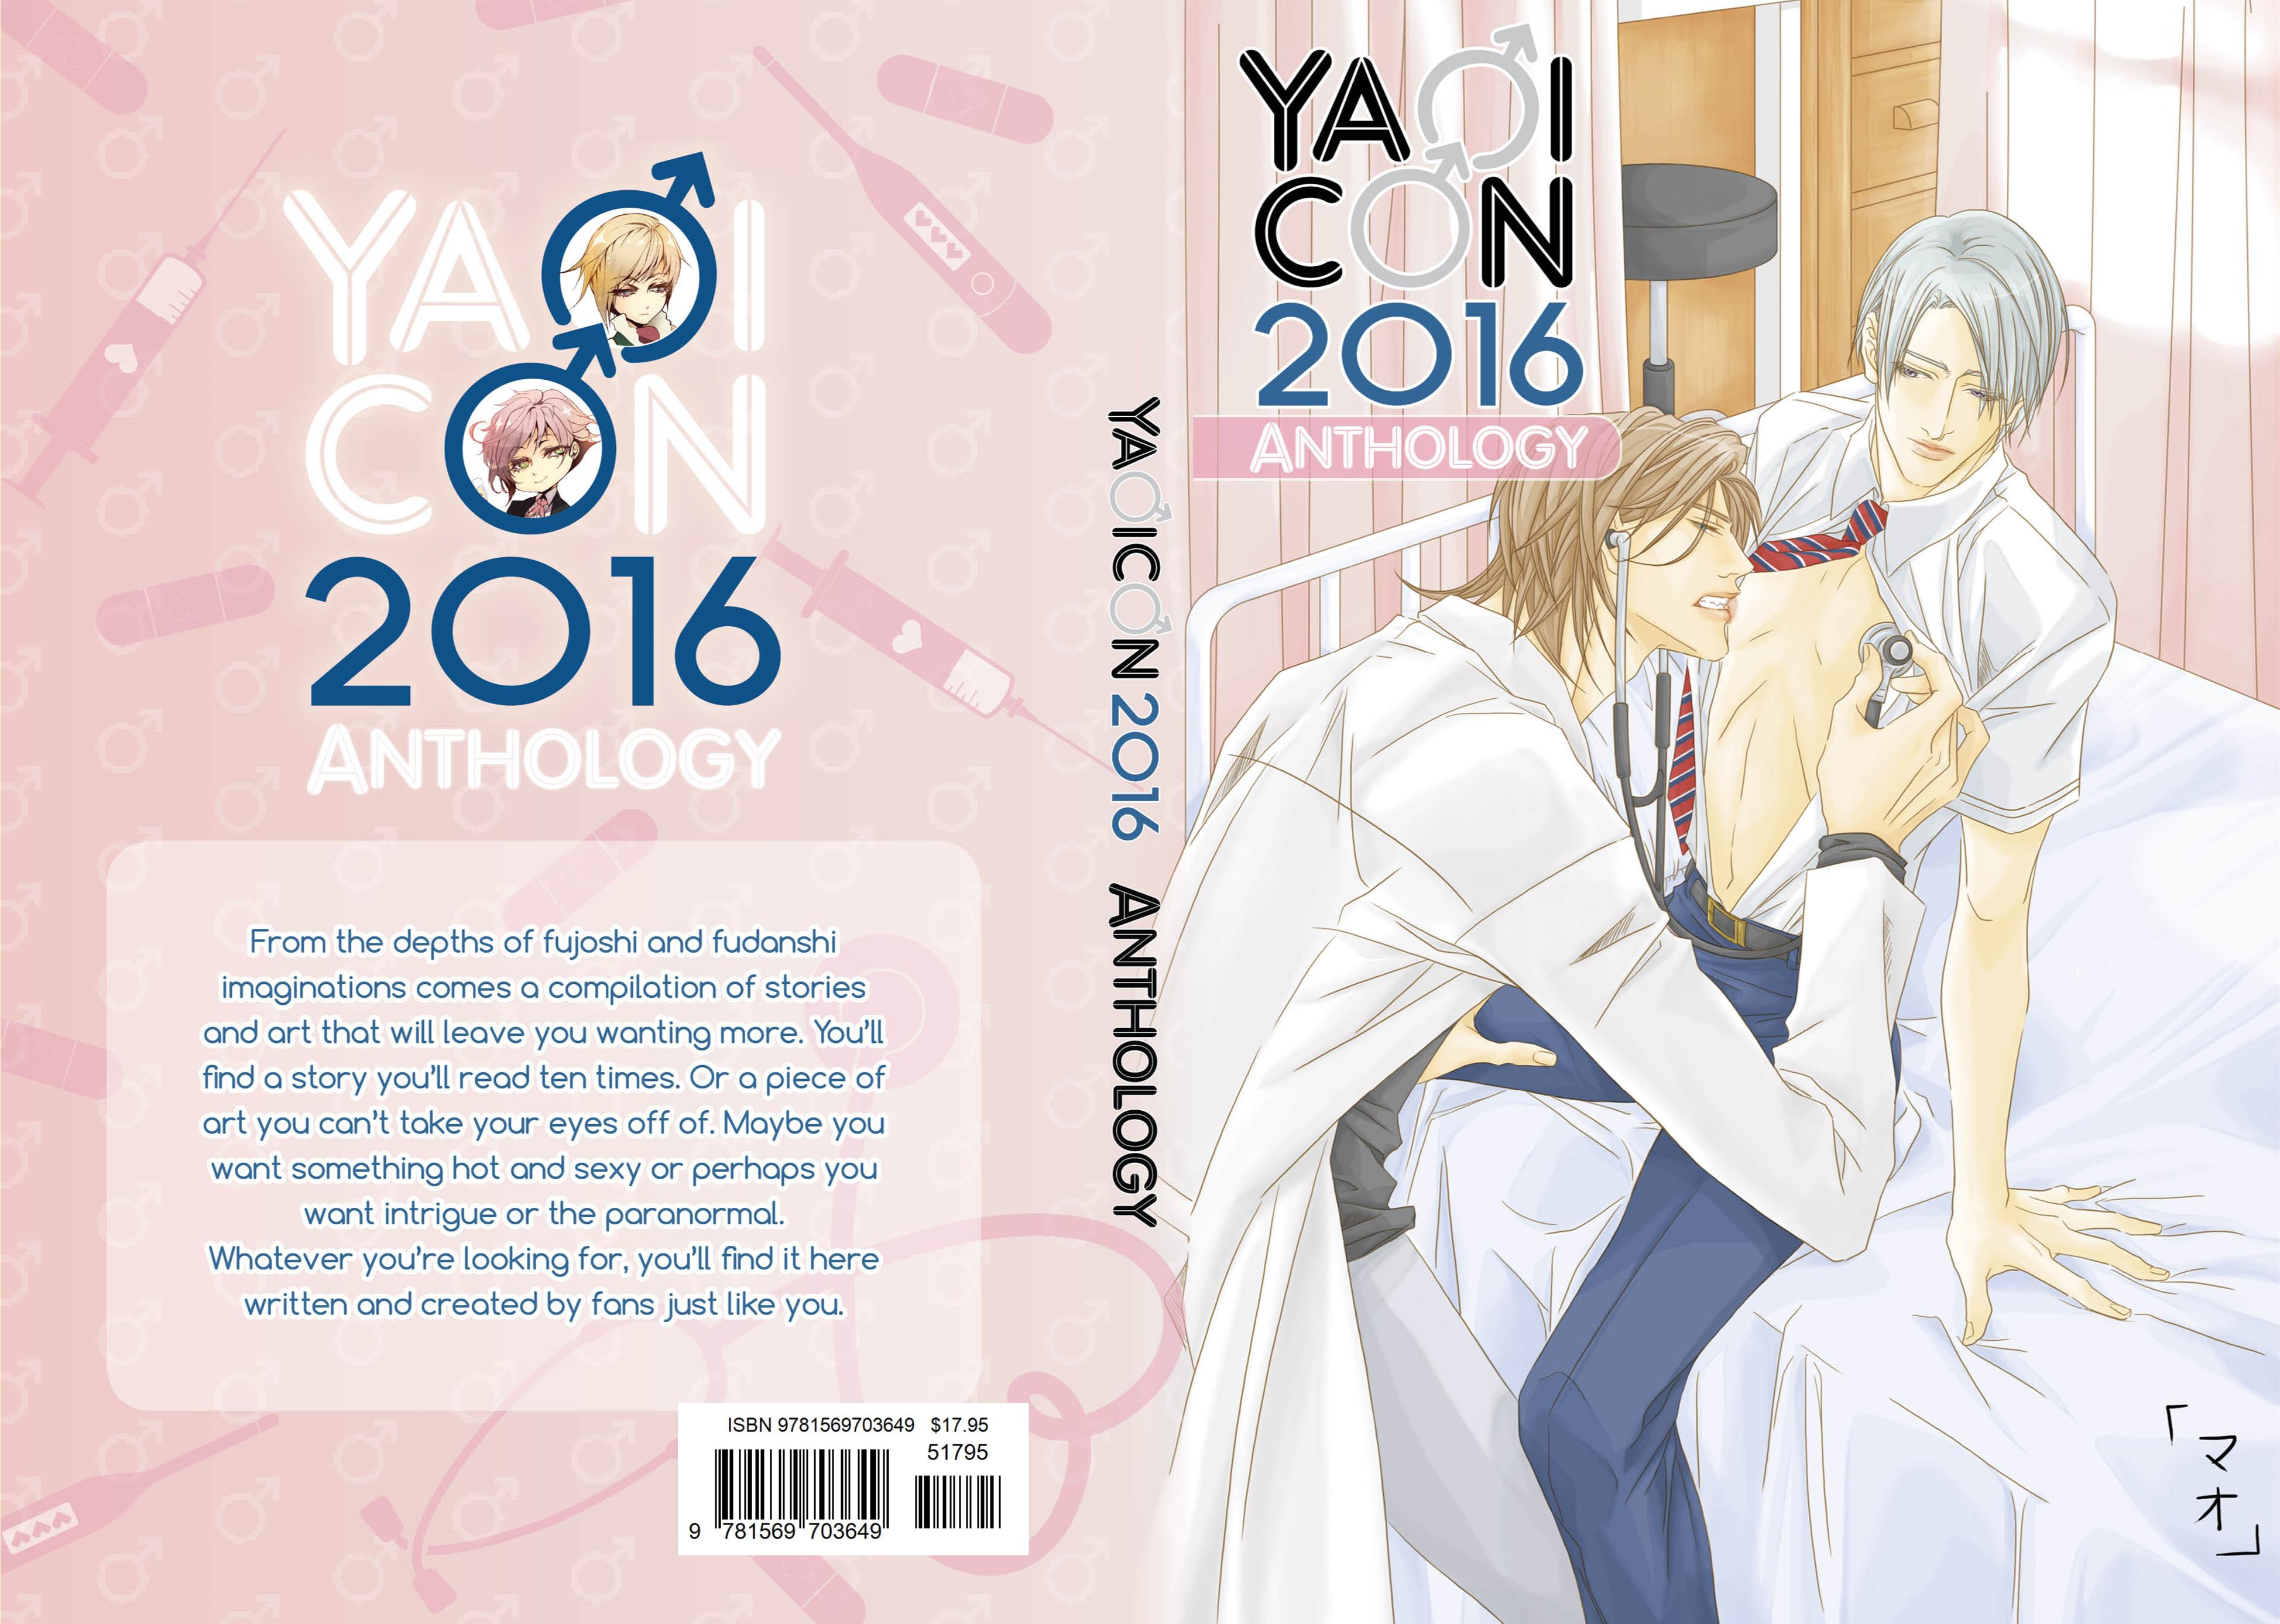 YaoiCon 2016 Anthology cover image